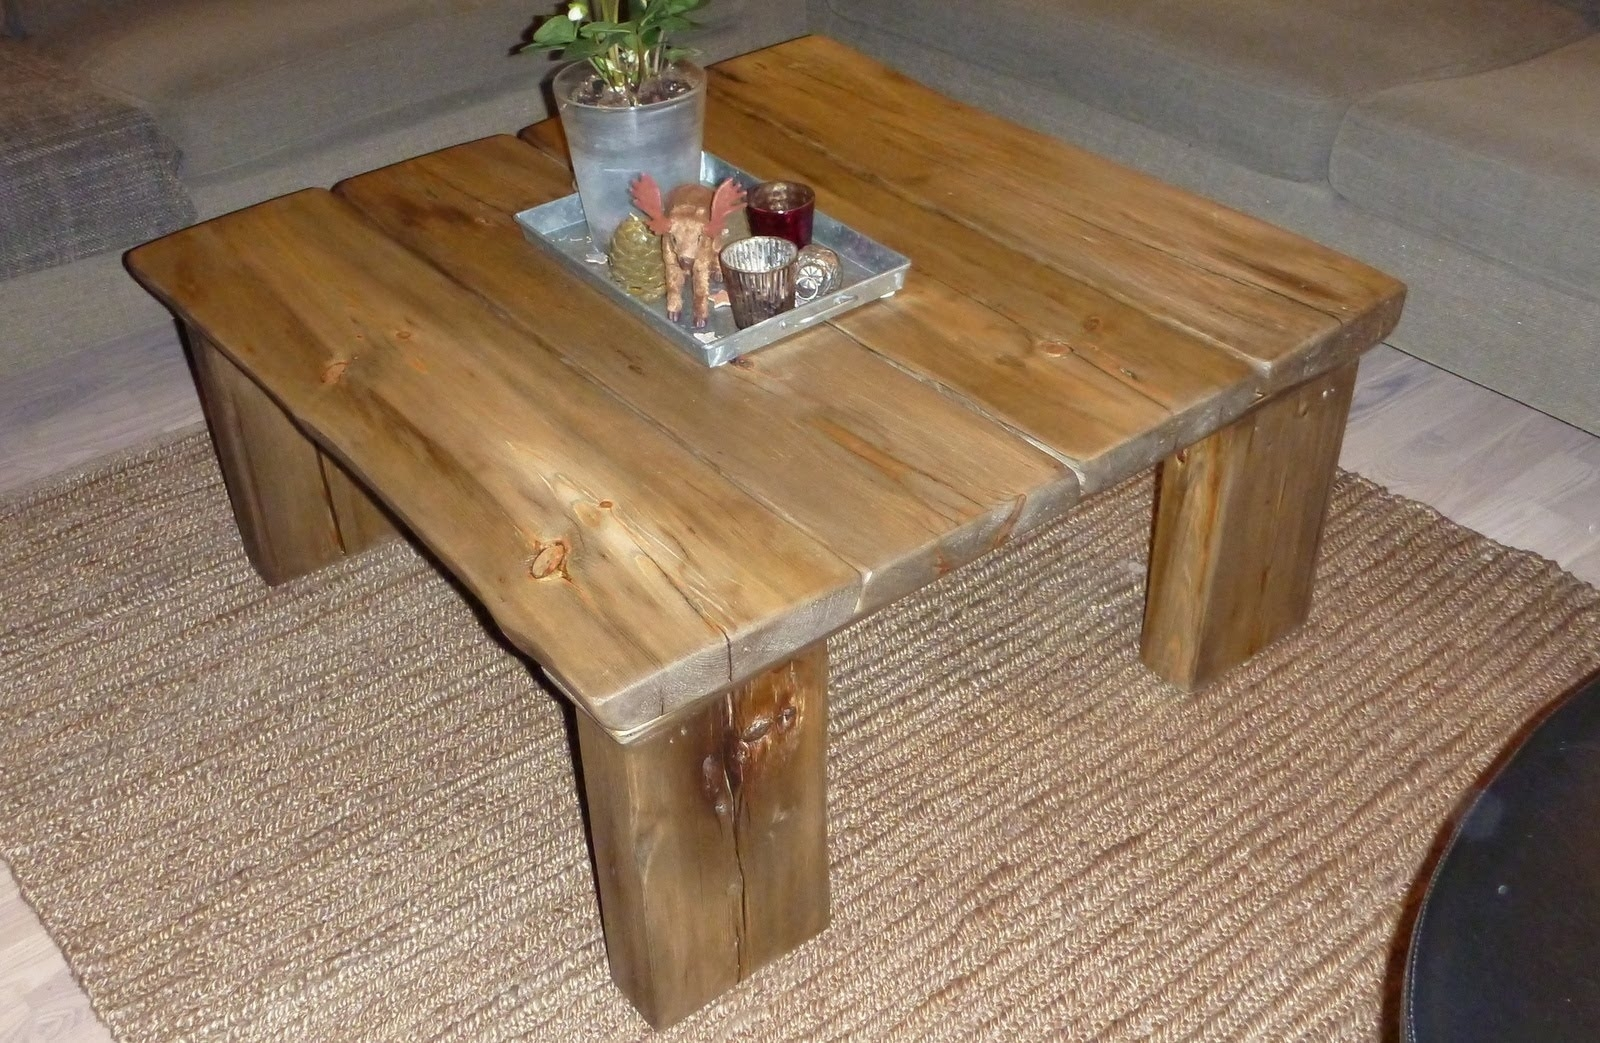 Coffee Table From Reclaimed Wood - Youtube intended for Mill Large Coffee Tables (Image 2 of 30)